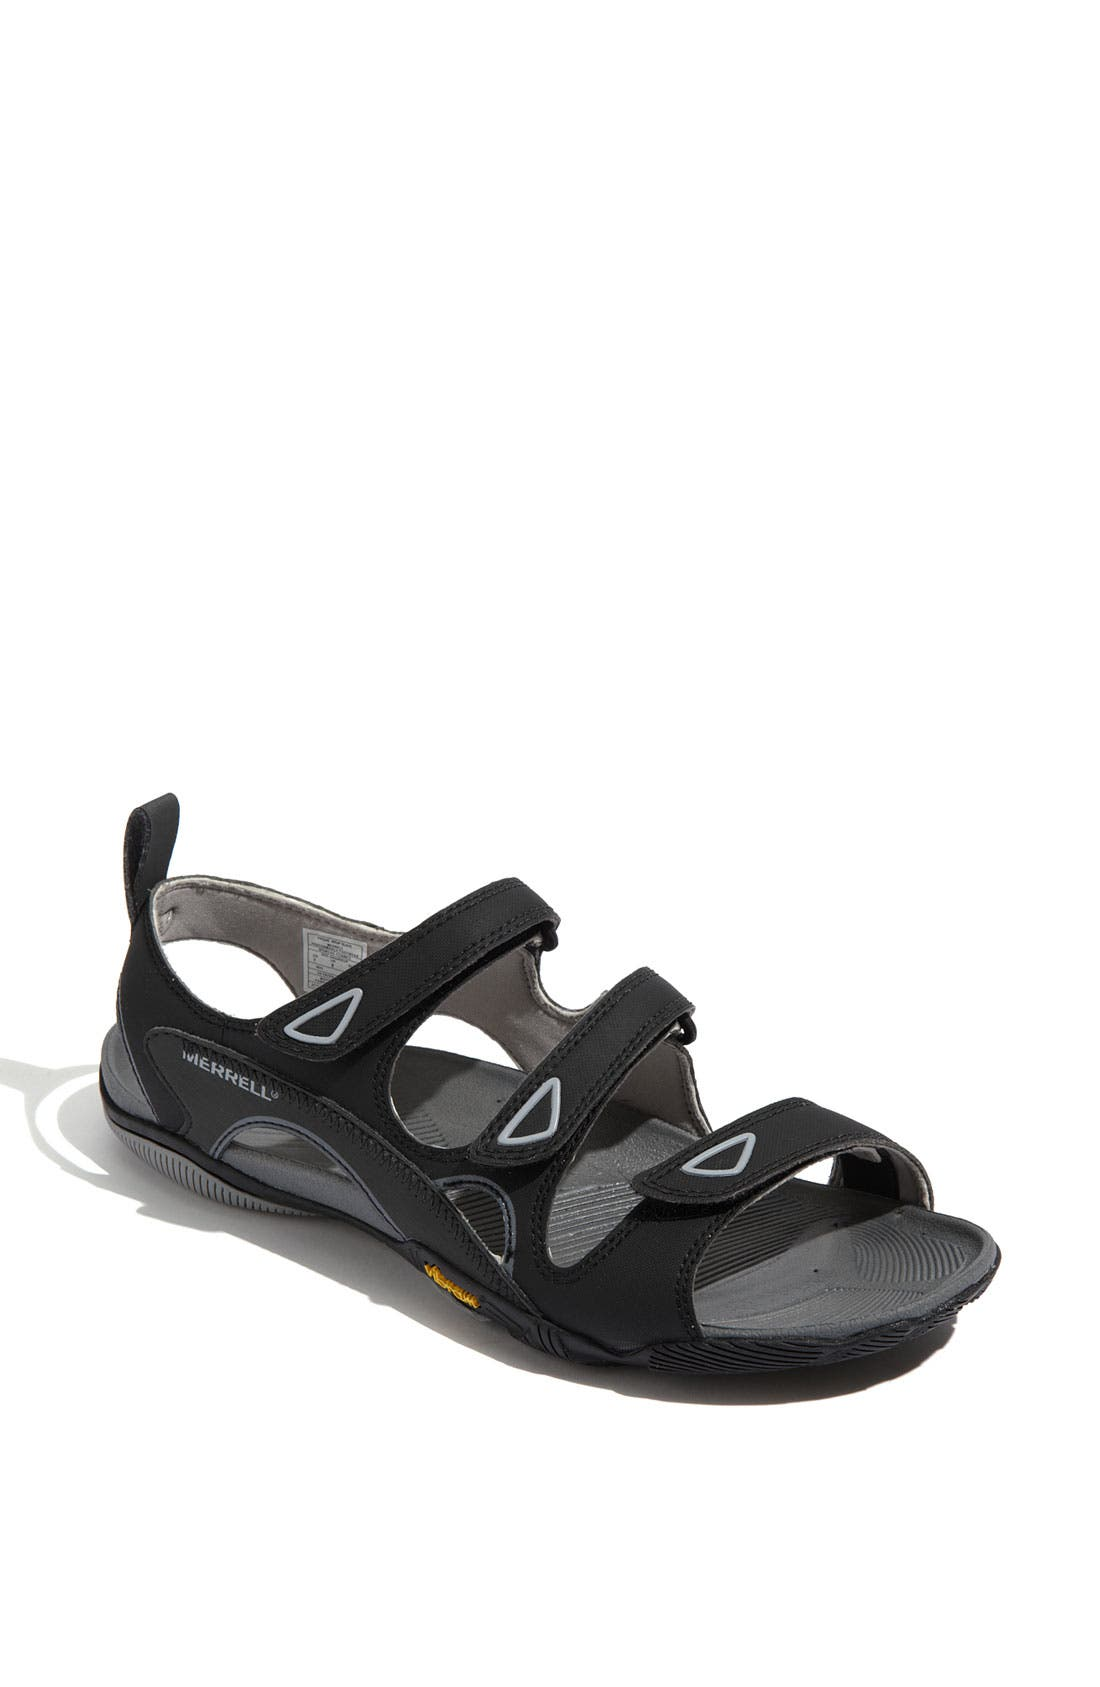 Alternate Image 1 Selected - Merrell 'Pipdae' Water Sandal